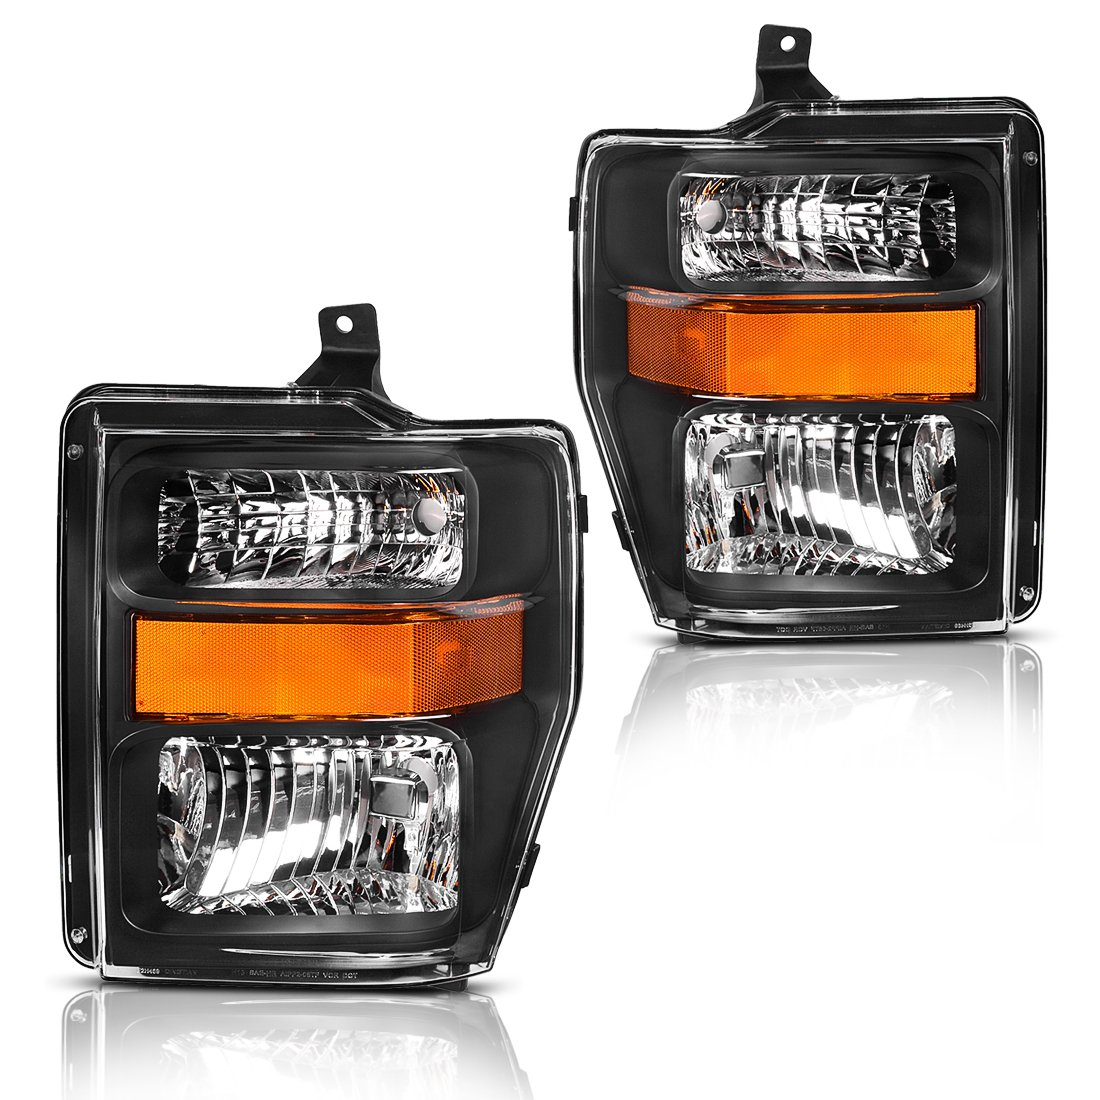 For 2008 2009 2010 Ford F250 F350 F450 Super duty Headlight Assembly, OE Projector Headlamp, Chrome Housing, One-Year Limited Warranty(Pair, 7C3Z-13008BA, 7C3Z-13008AA) AUTOSAVER88